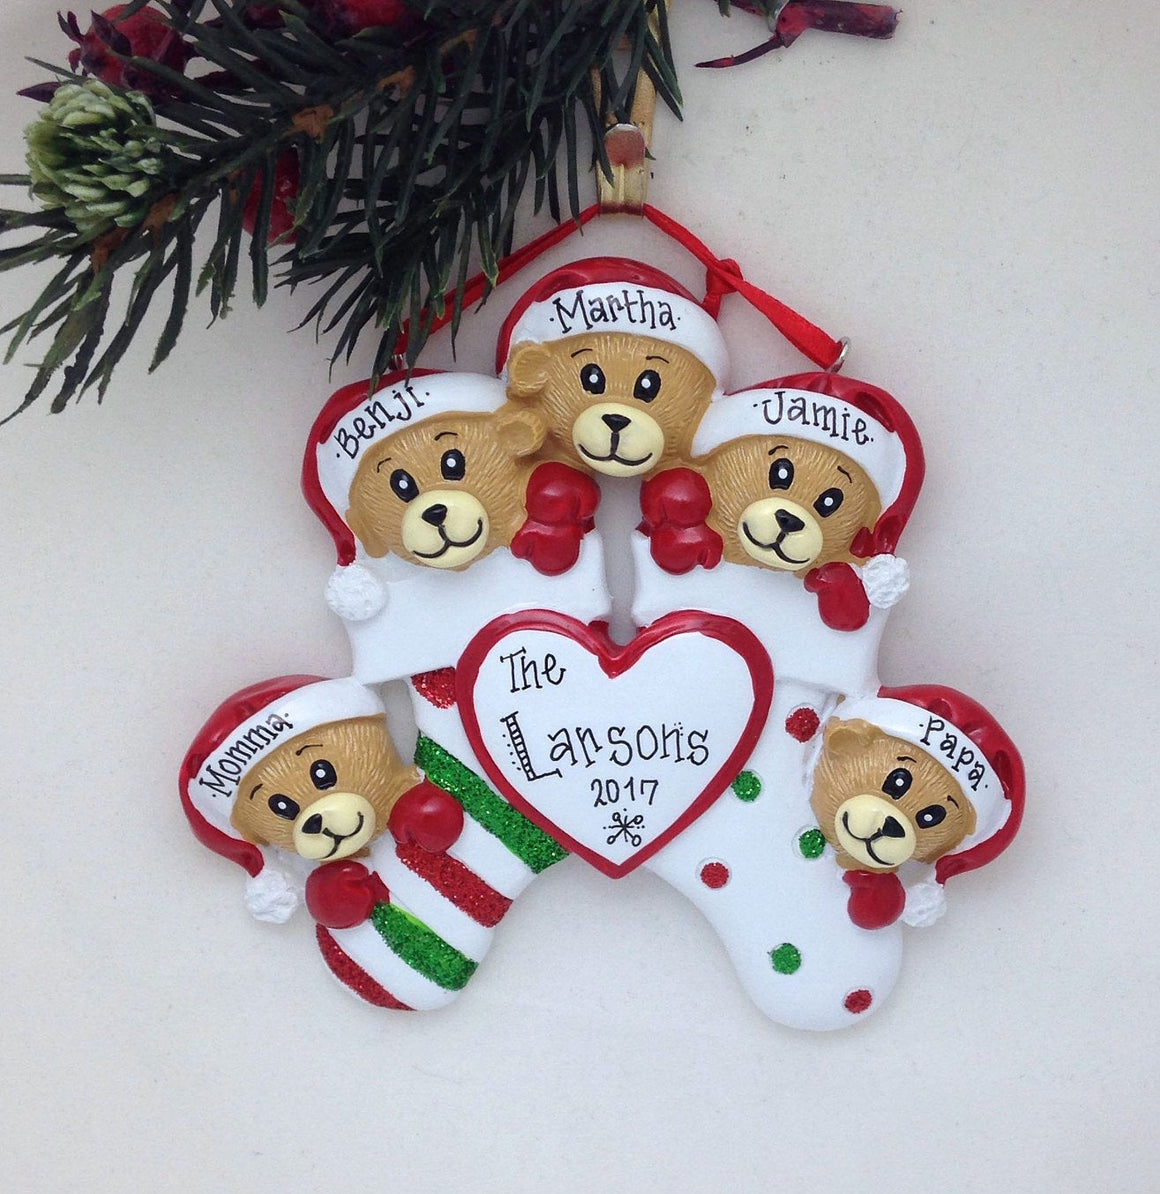 5 Teddy Bears in Christmas Stockings Personalized Ornament